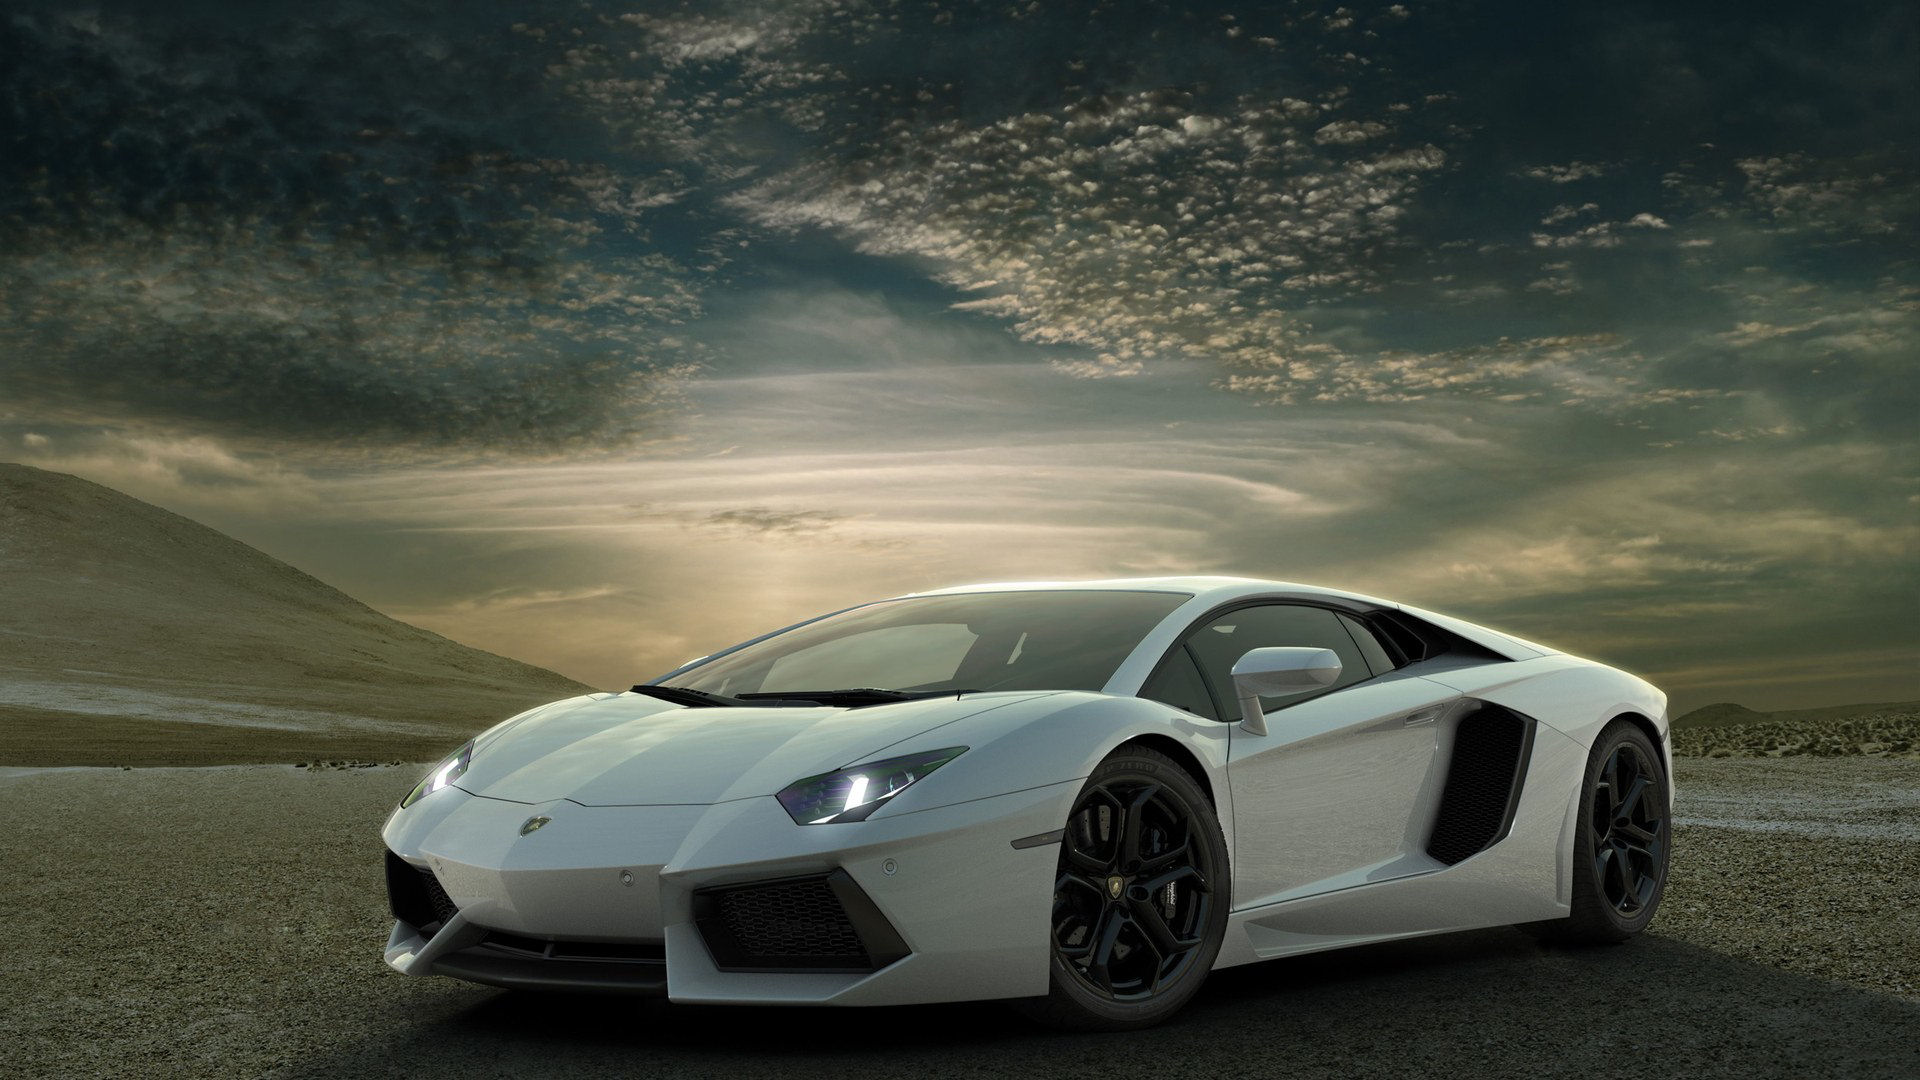 best-car-wallpapers-15-photos- (8)